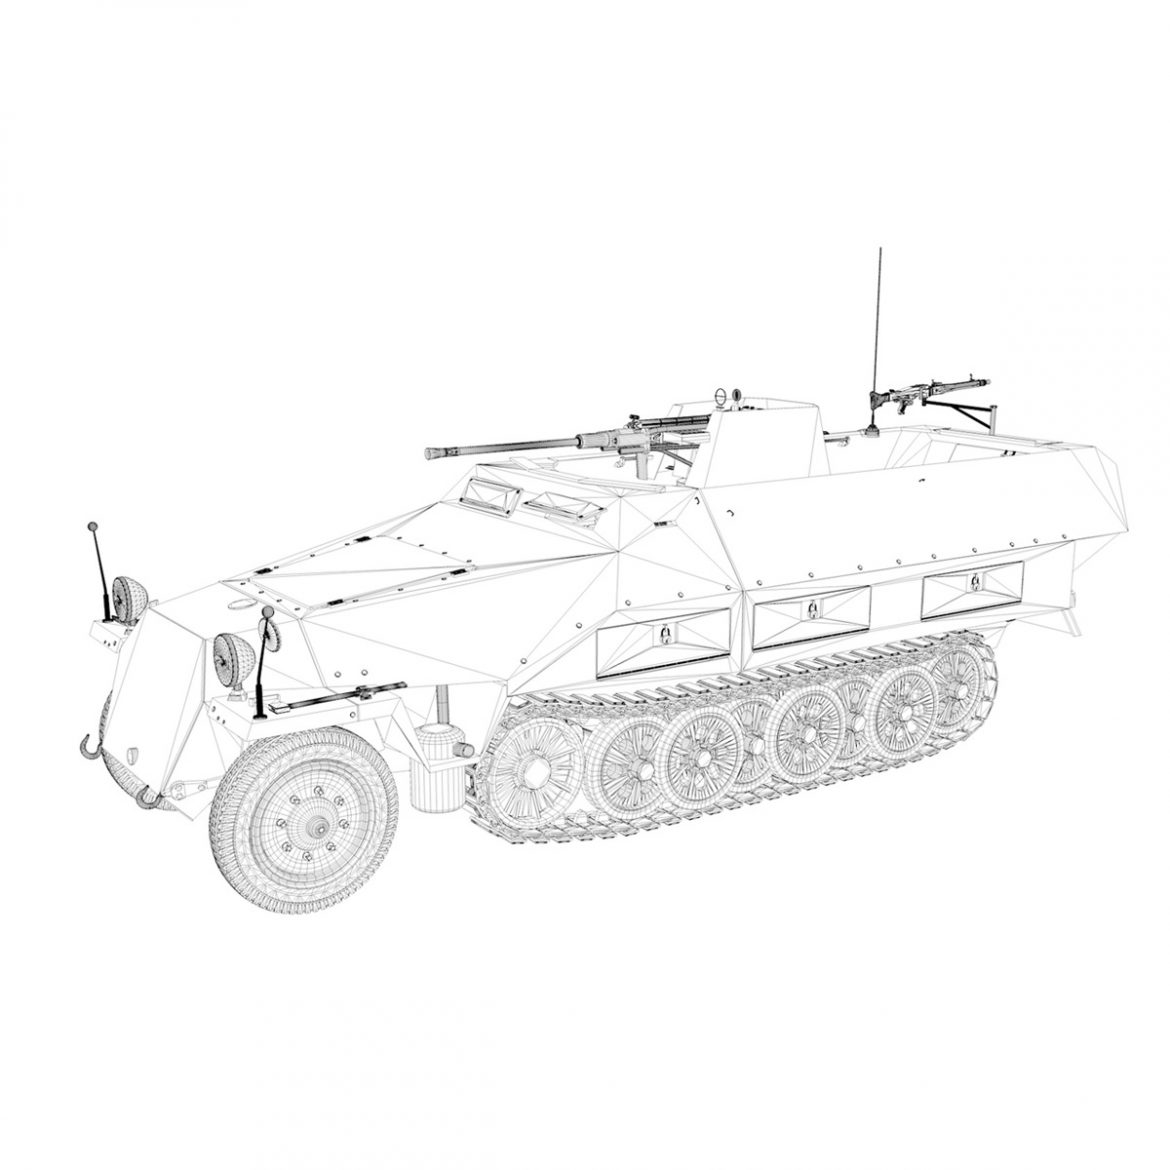 sd.kfz 251/17 ausf.d – anti-aircraft vehicle 3d model 3ds fbx c4d lwo obj 302960